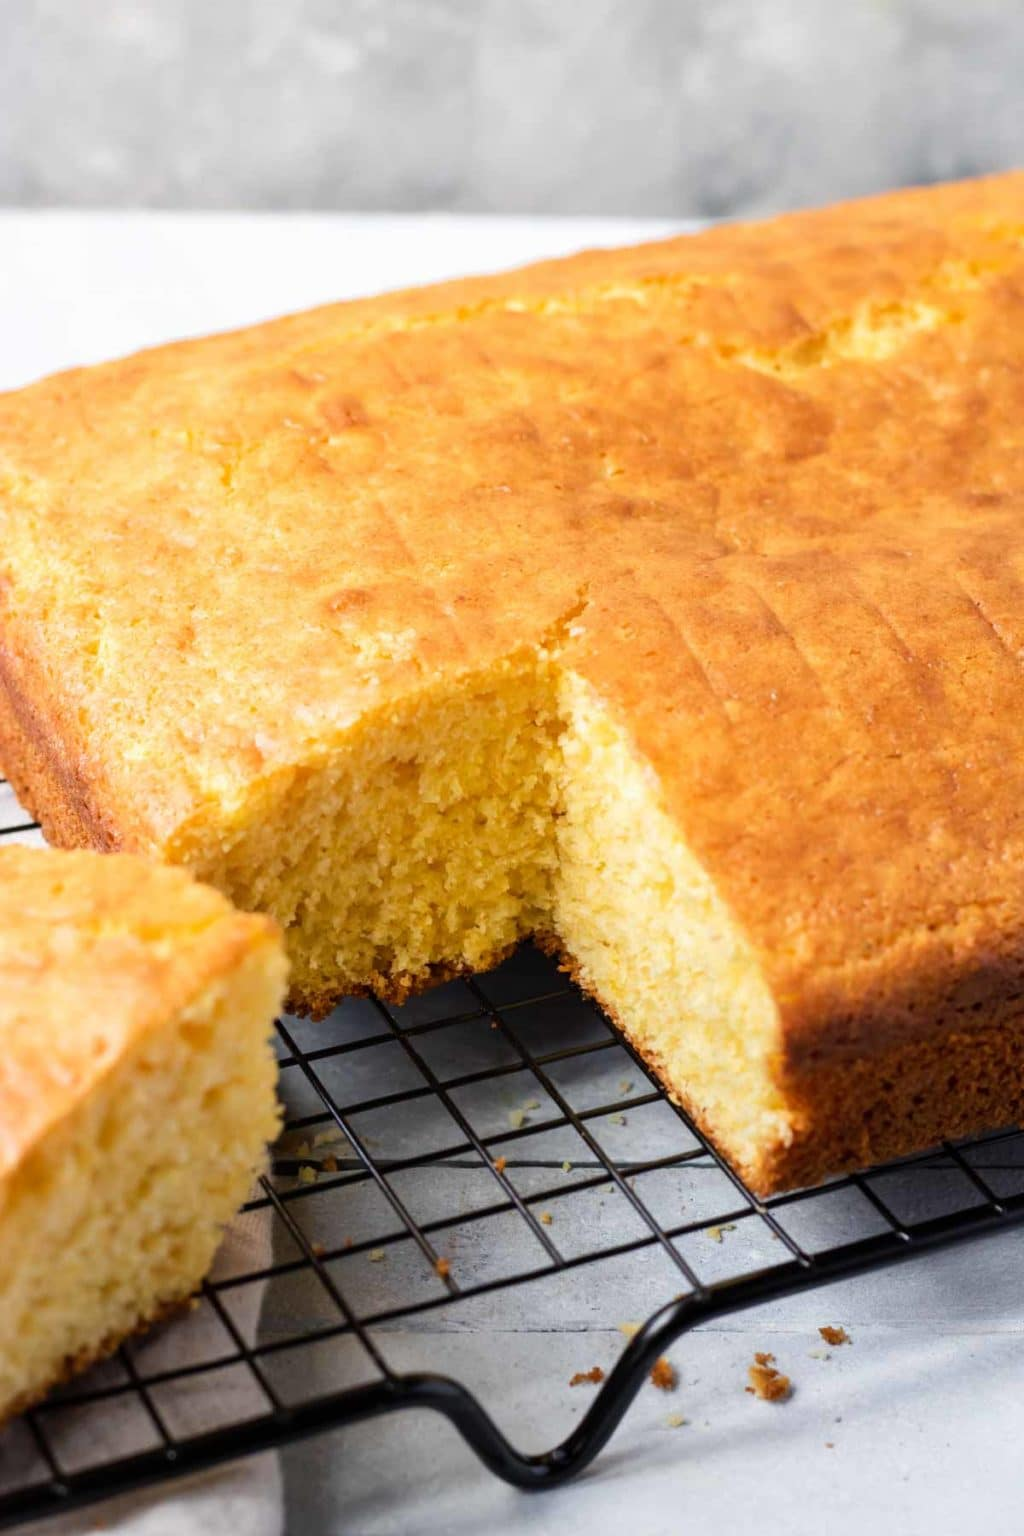 Cornbread made with a box of yellow cake mix and two jiffy corn muffin mixes, cooling on a black cooling rack